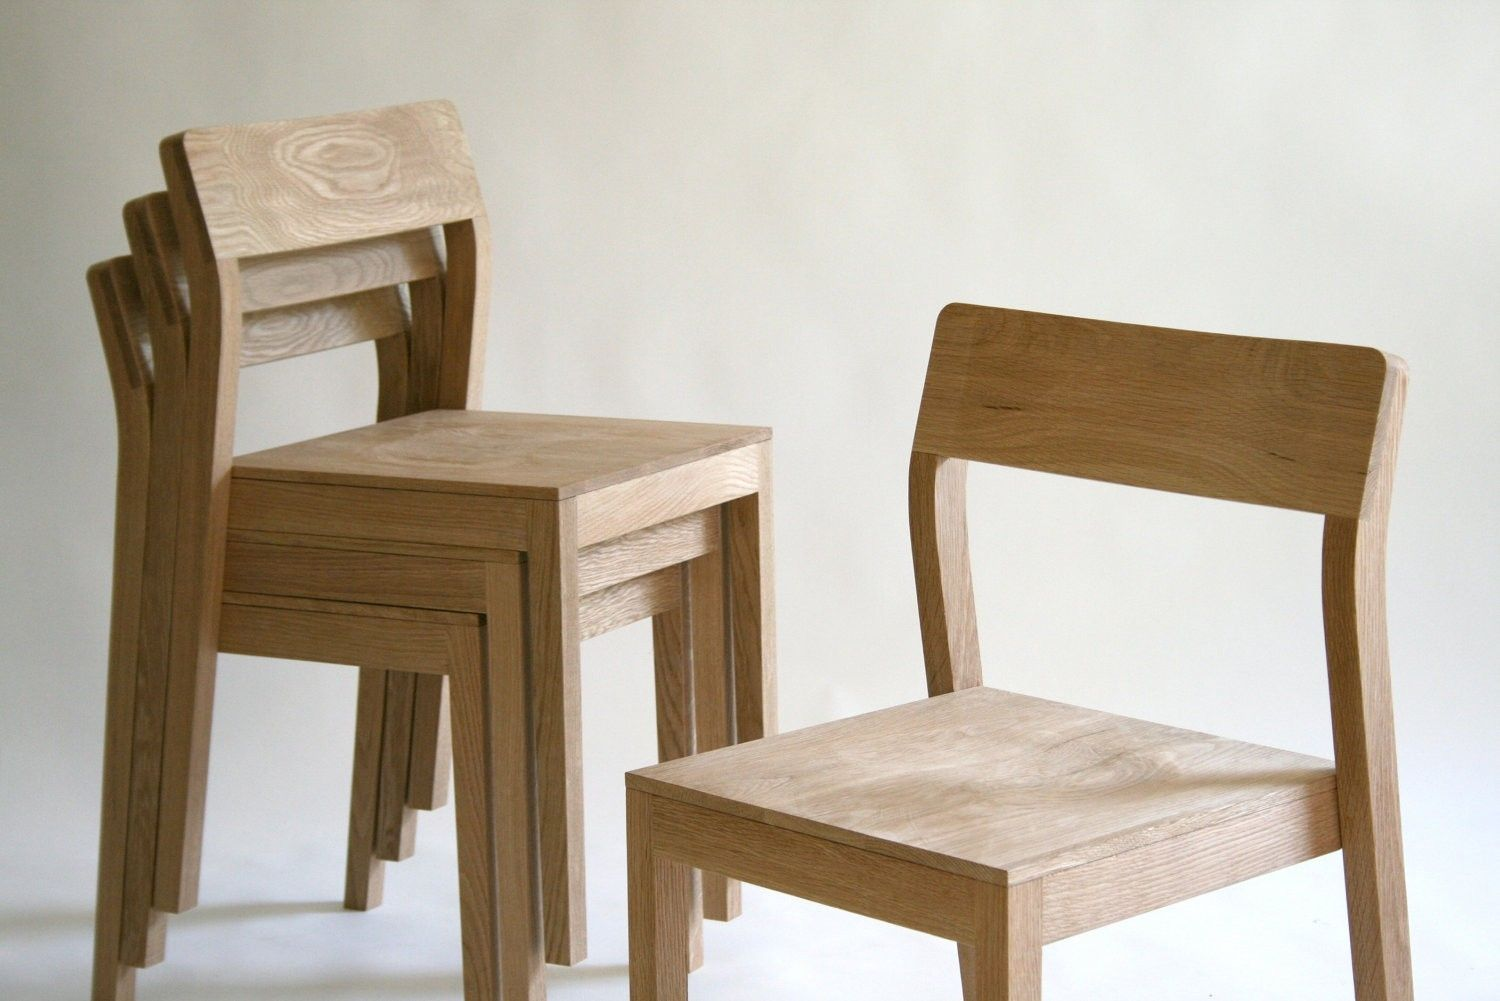 Decorate your house with the perfect dining chair